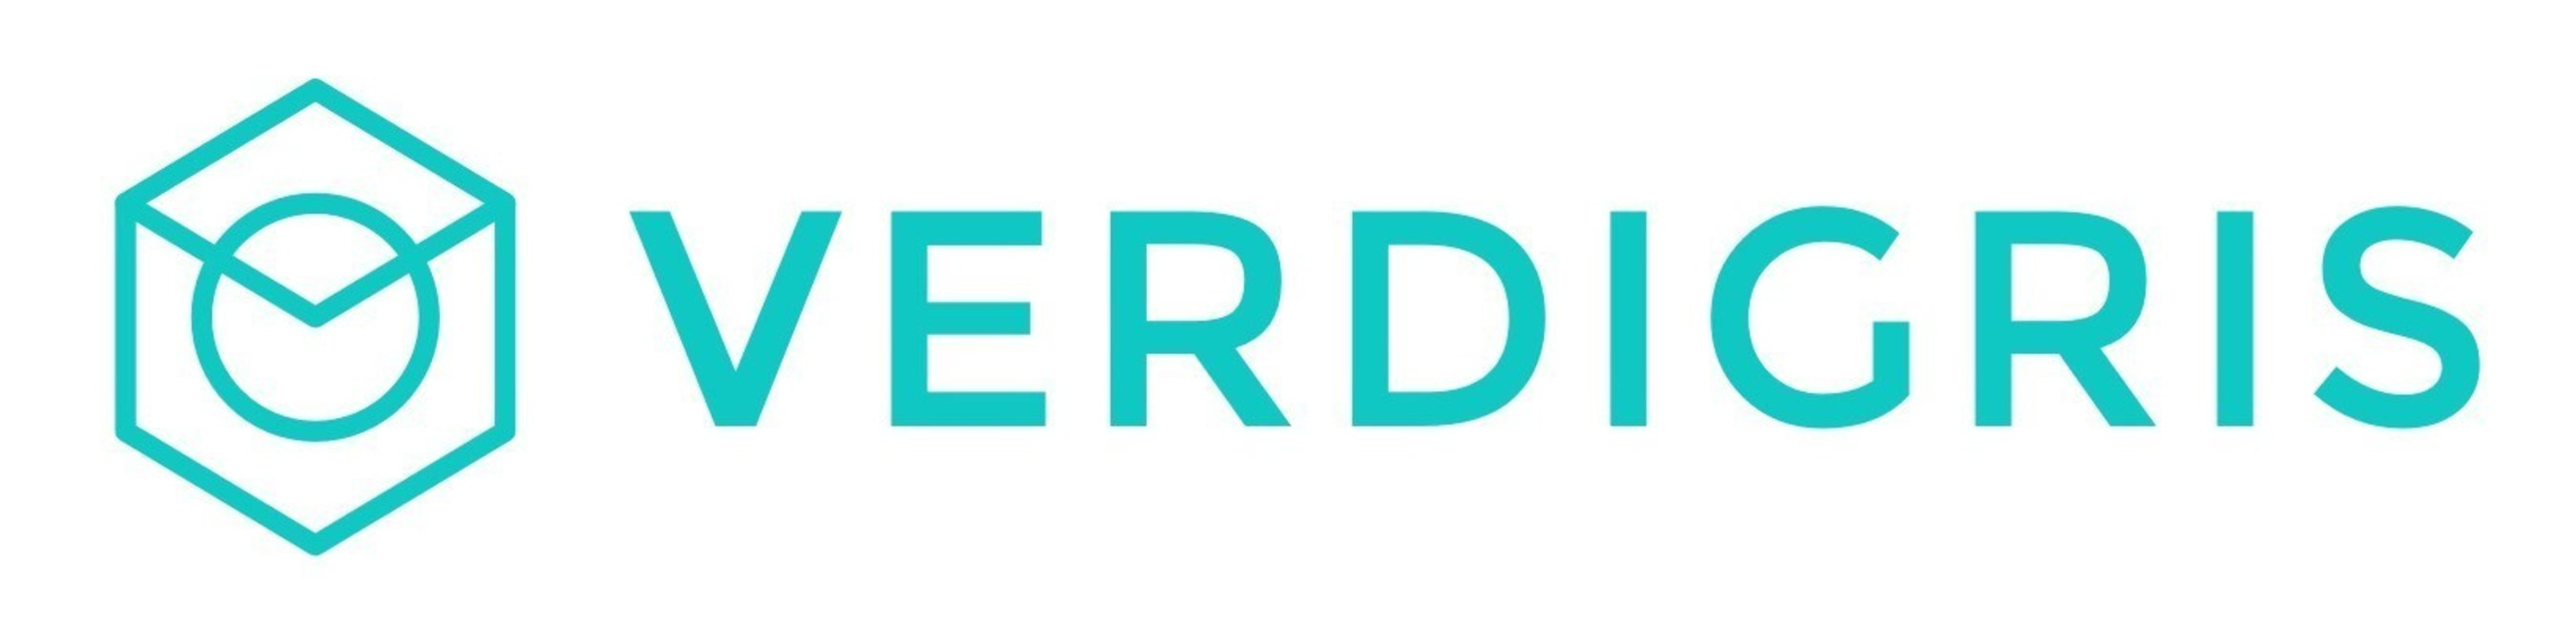 Verdigris Announces $6.7M Funding Round With Investments By Jabil And Verizon